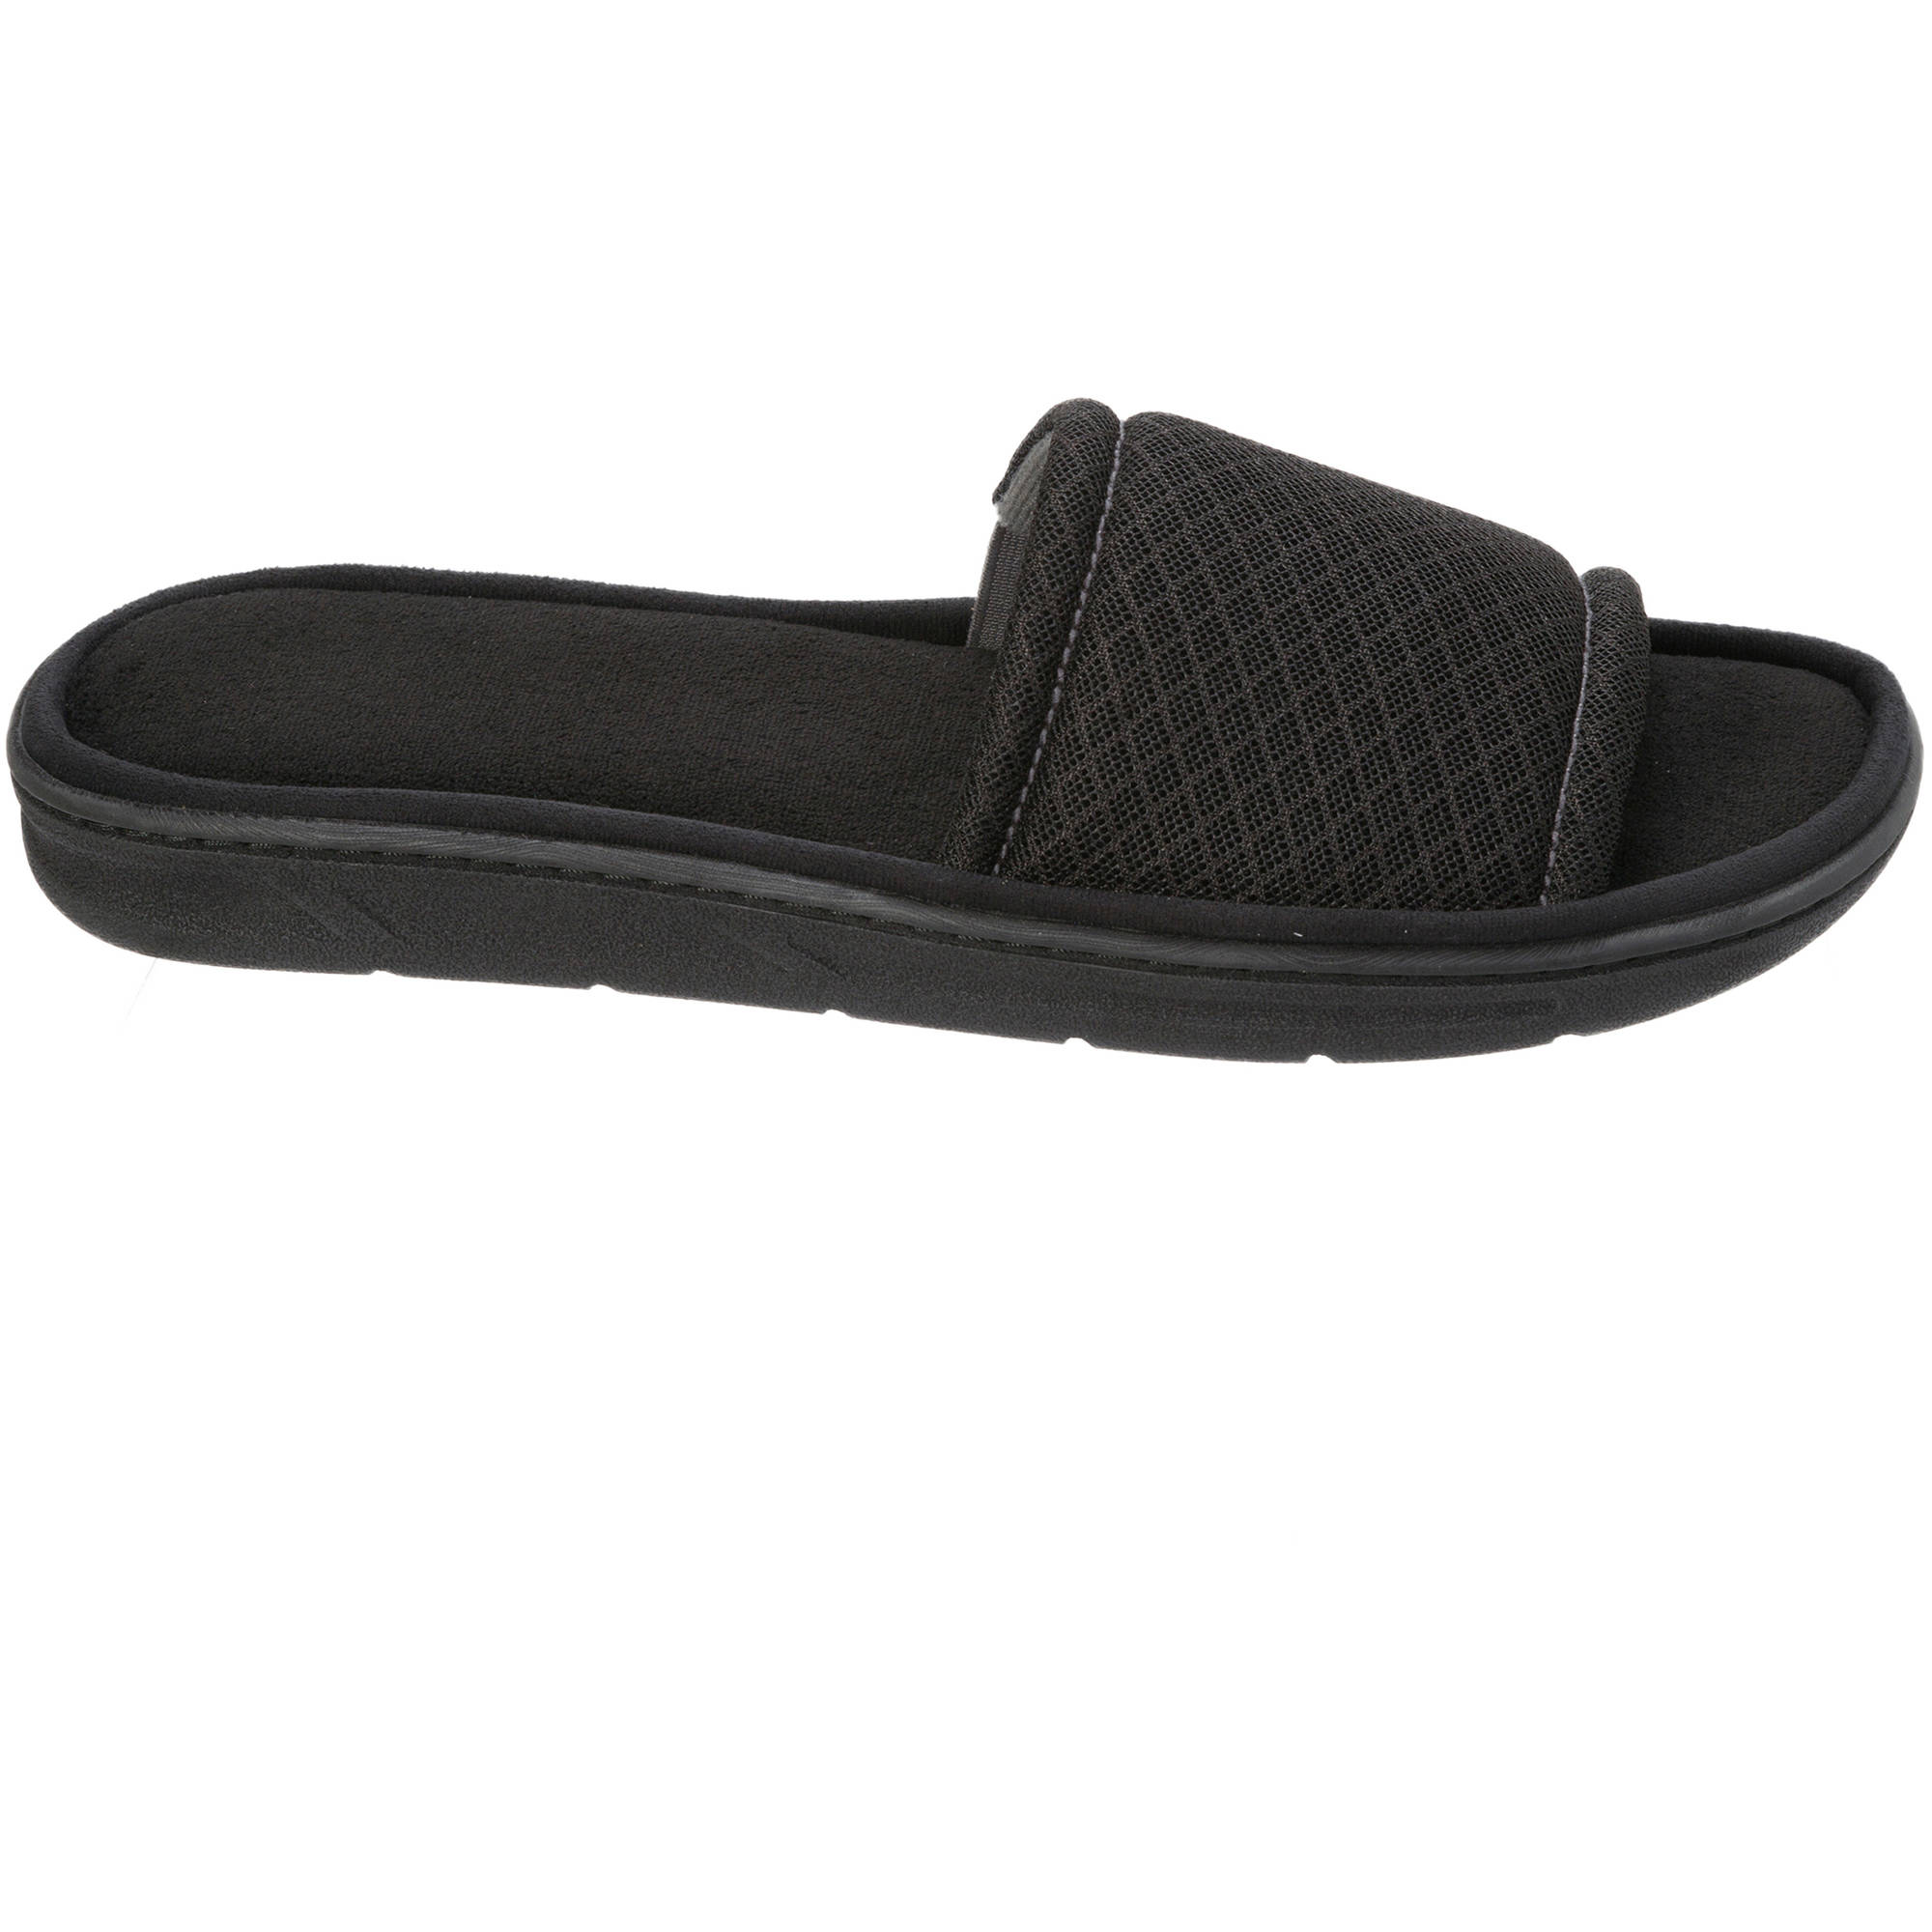 Image of DF by Dearfoams Men's Mesh Slide Slipper